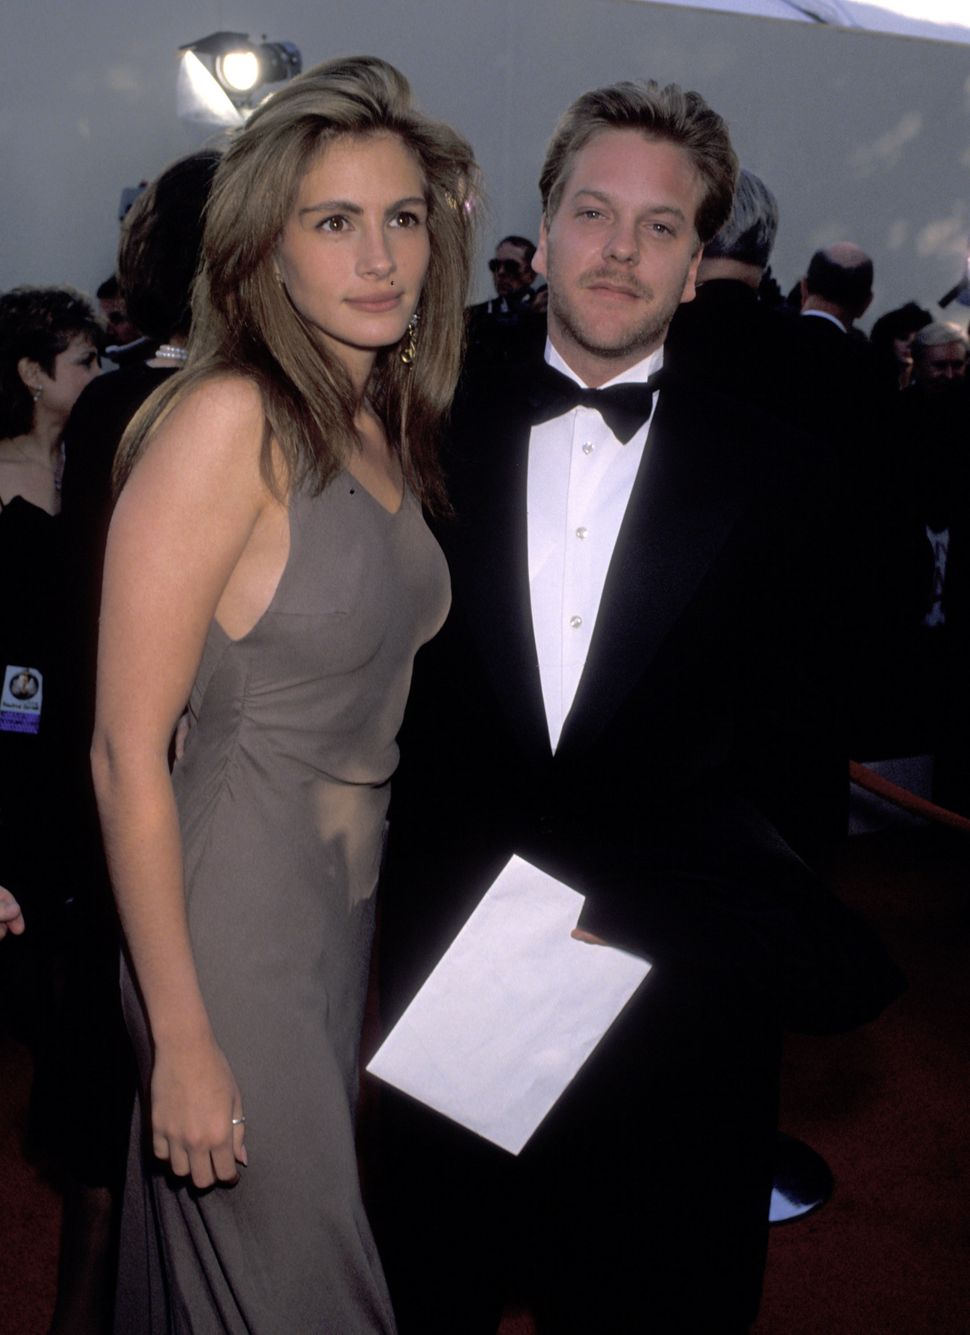 Julia Roberts and Kiefer Sutherland at the 62nd annual Academy Awards in 1990.